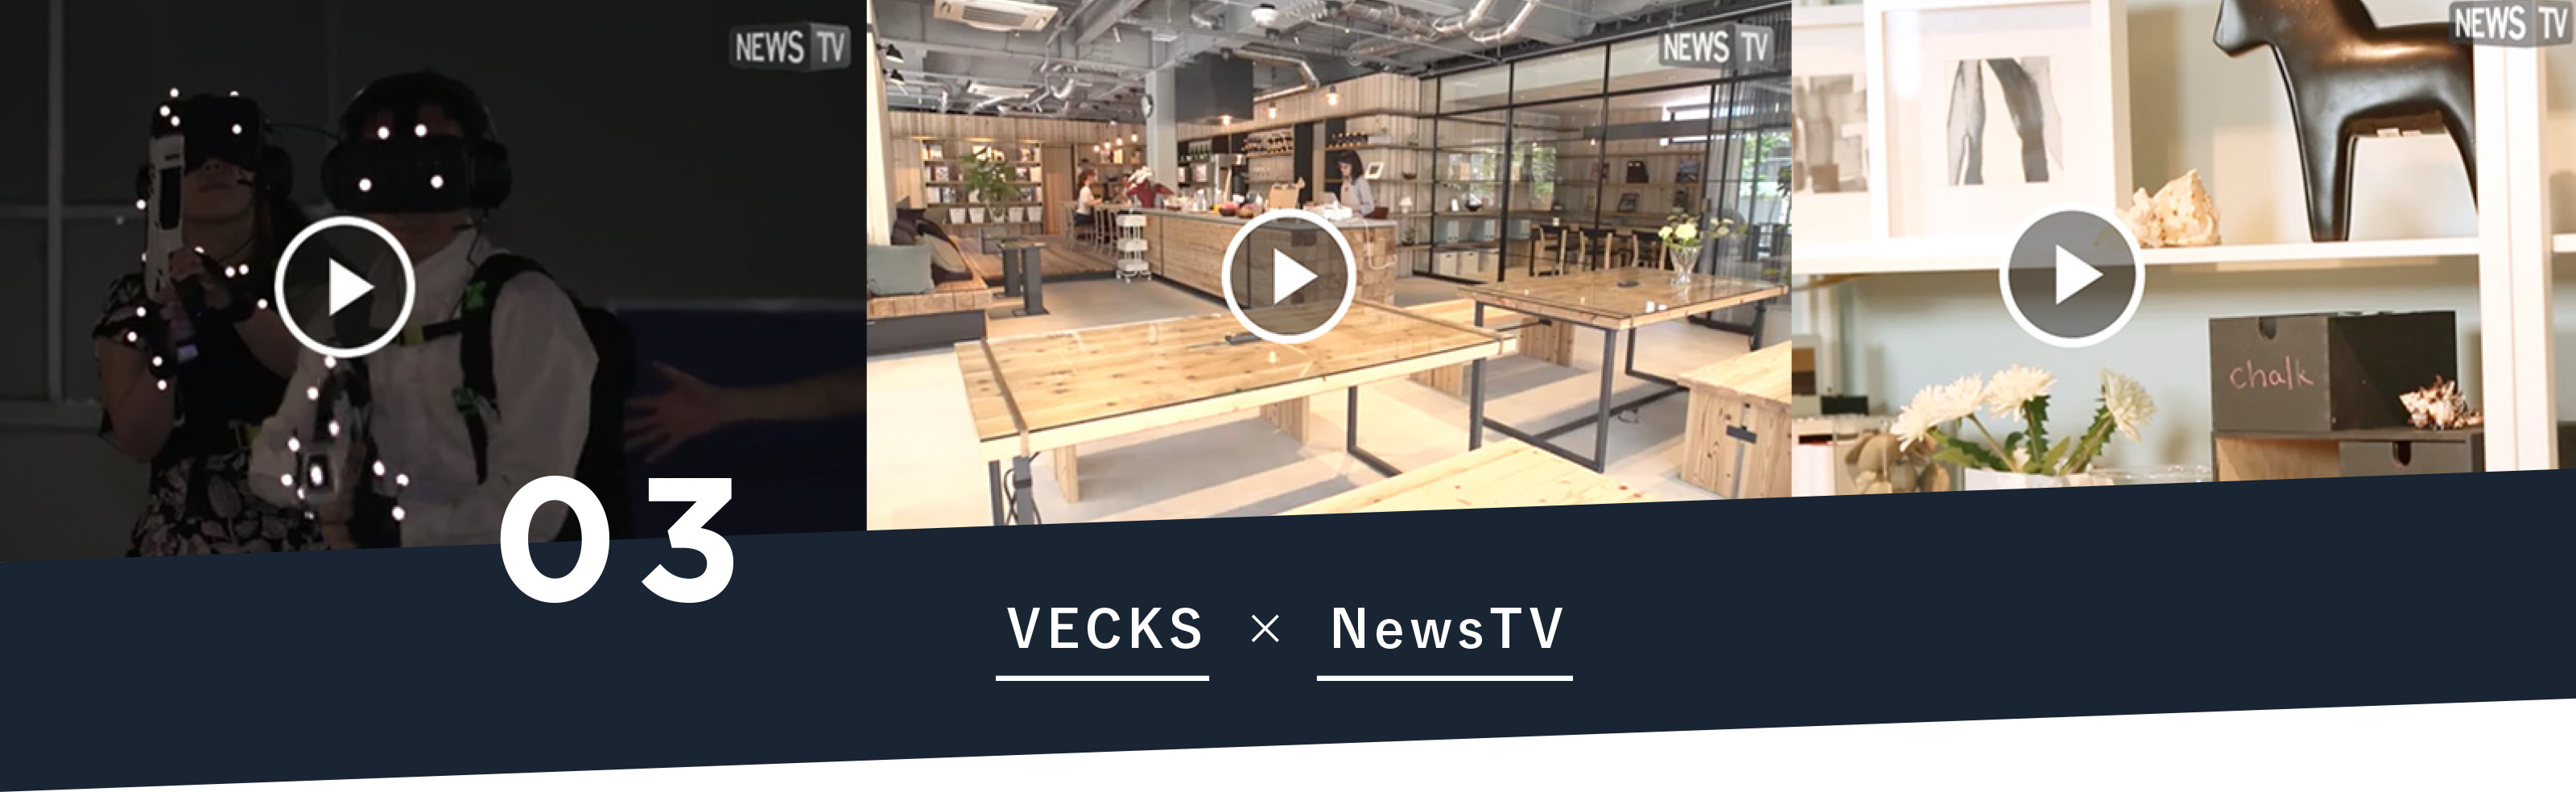 03 VECKS × NewsTV